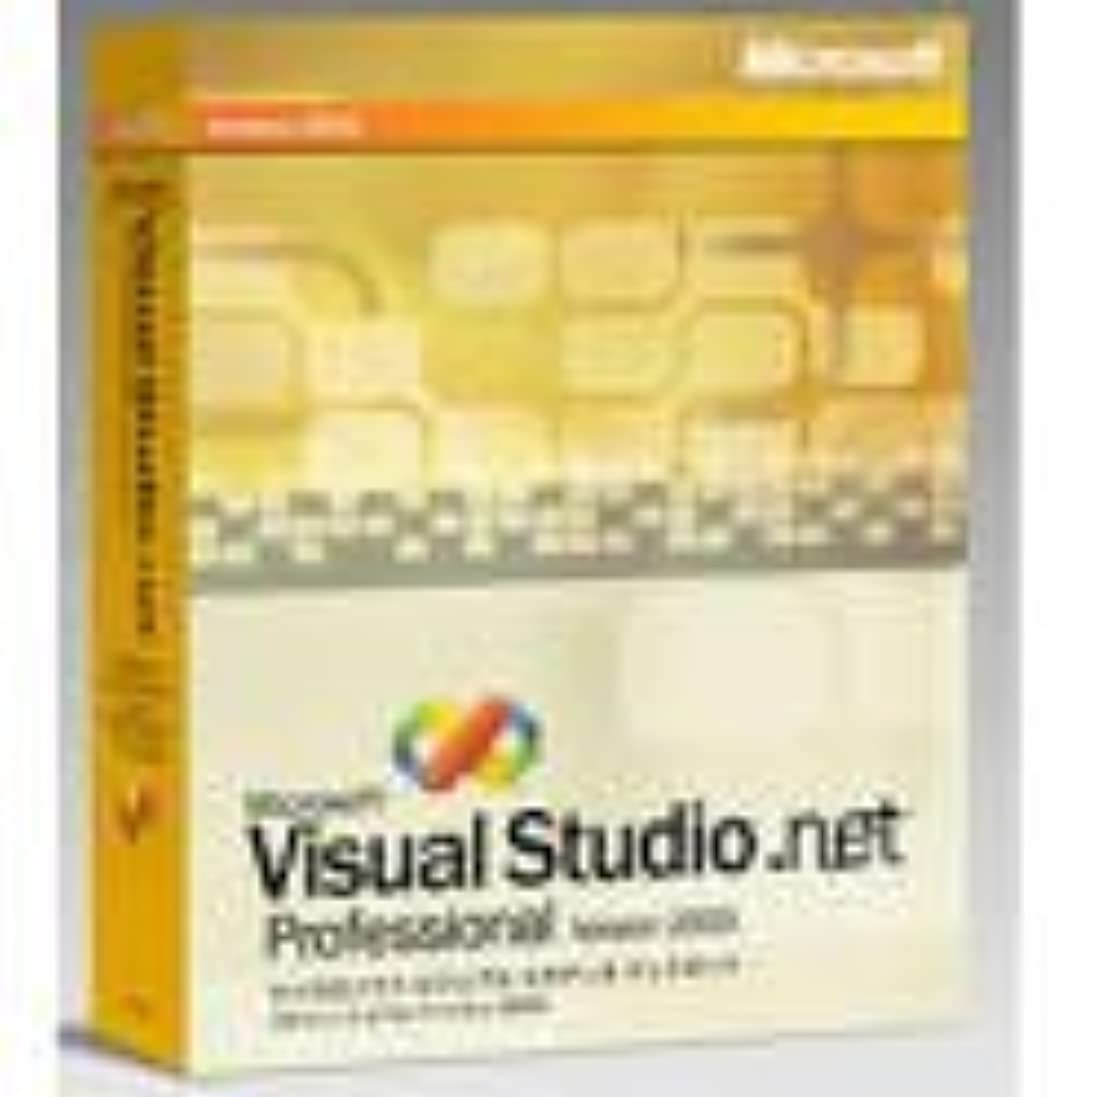 急襲運動する他の場所Microsoft Visual Studio .NET Professional Version 2003